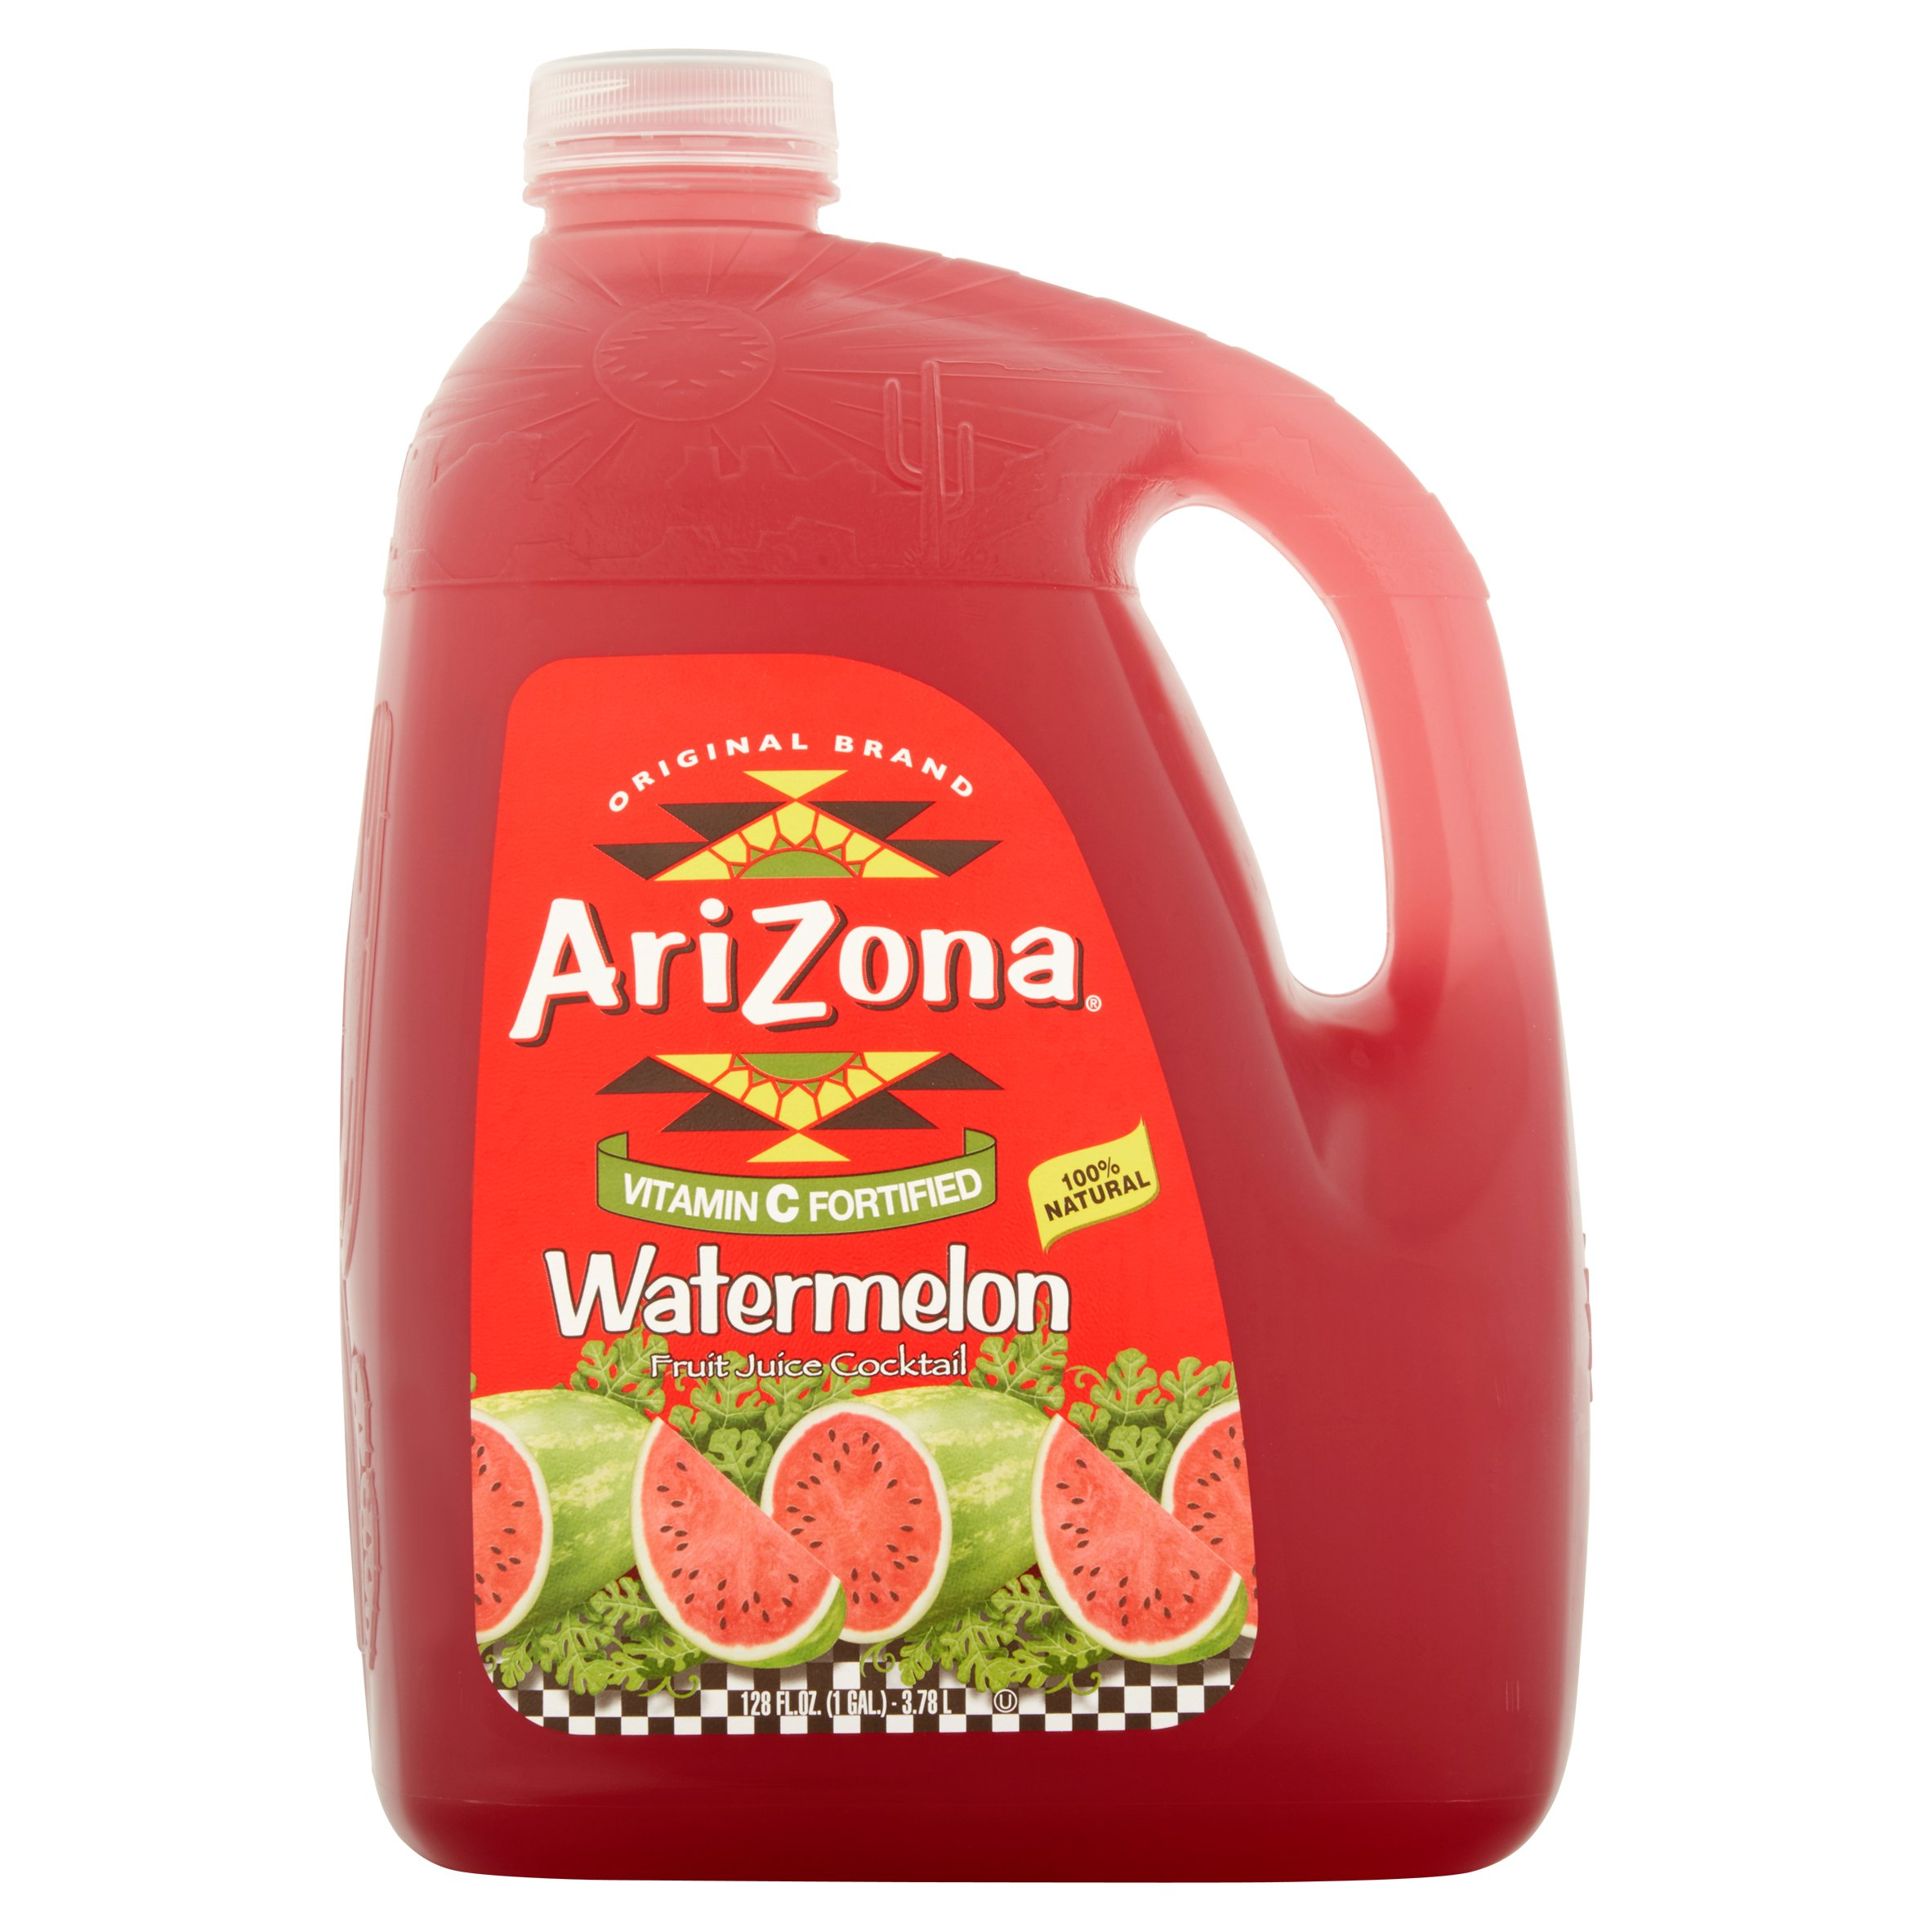 Arizona Juice Cocktail, Watermelon, 128 Fl Oz, 1 Count